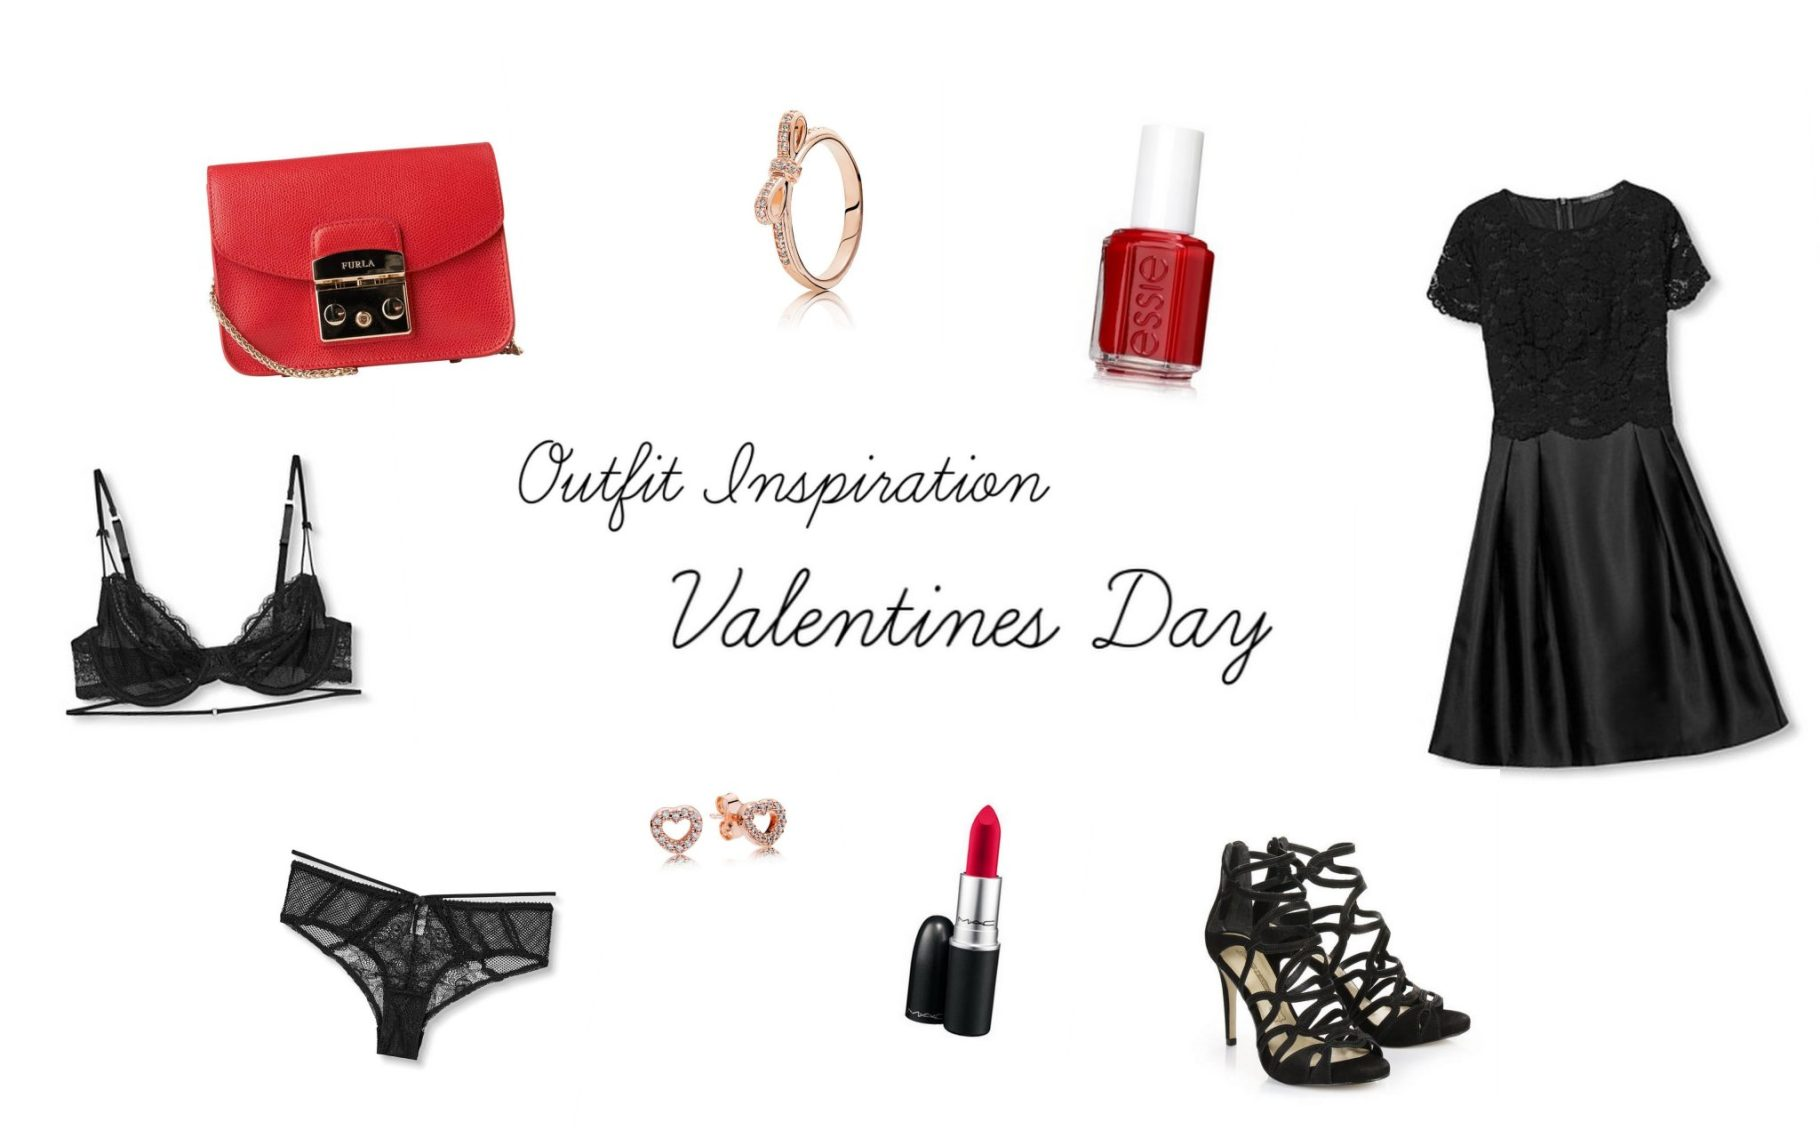 Outfit Inspiration: Valentinstag